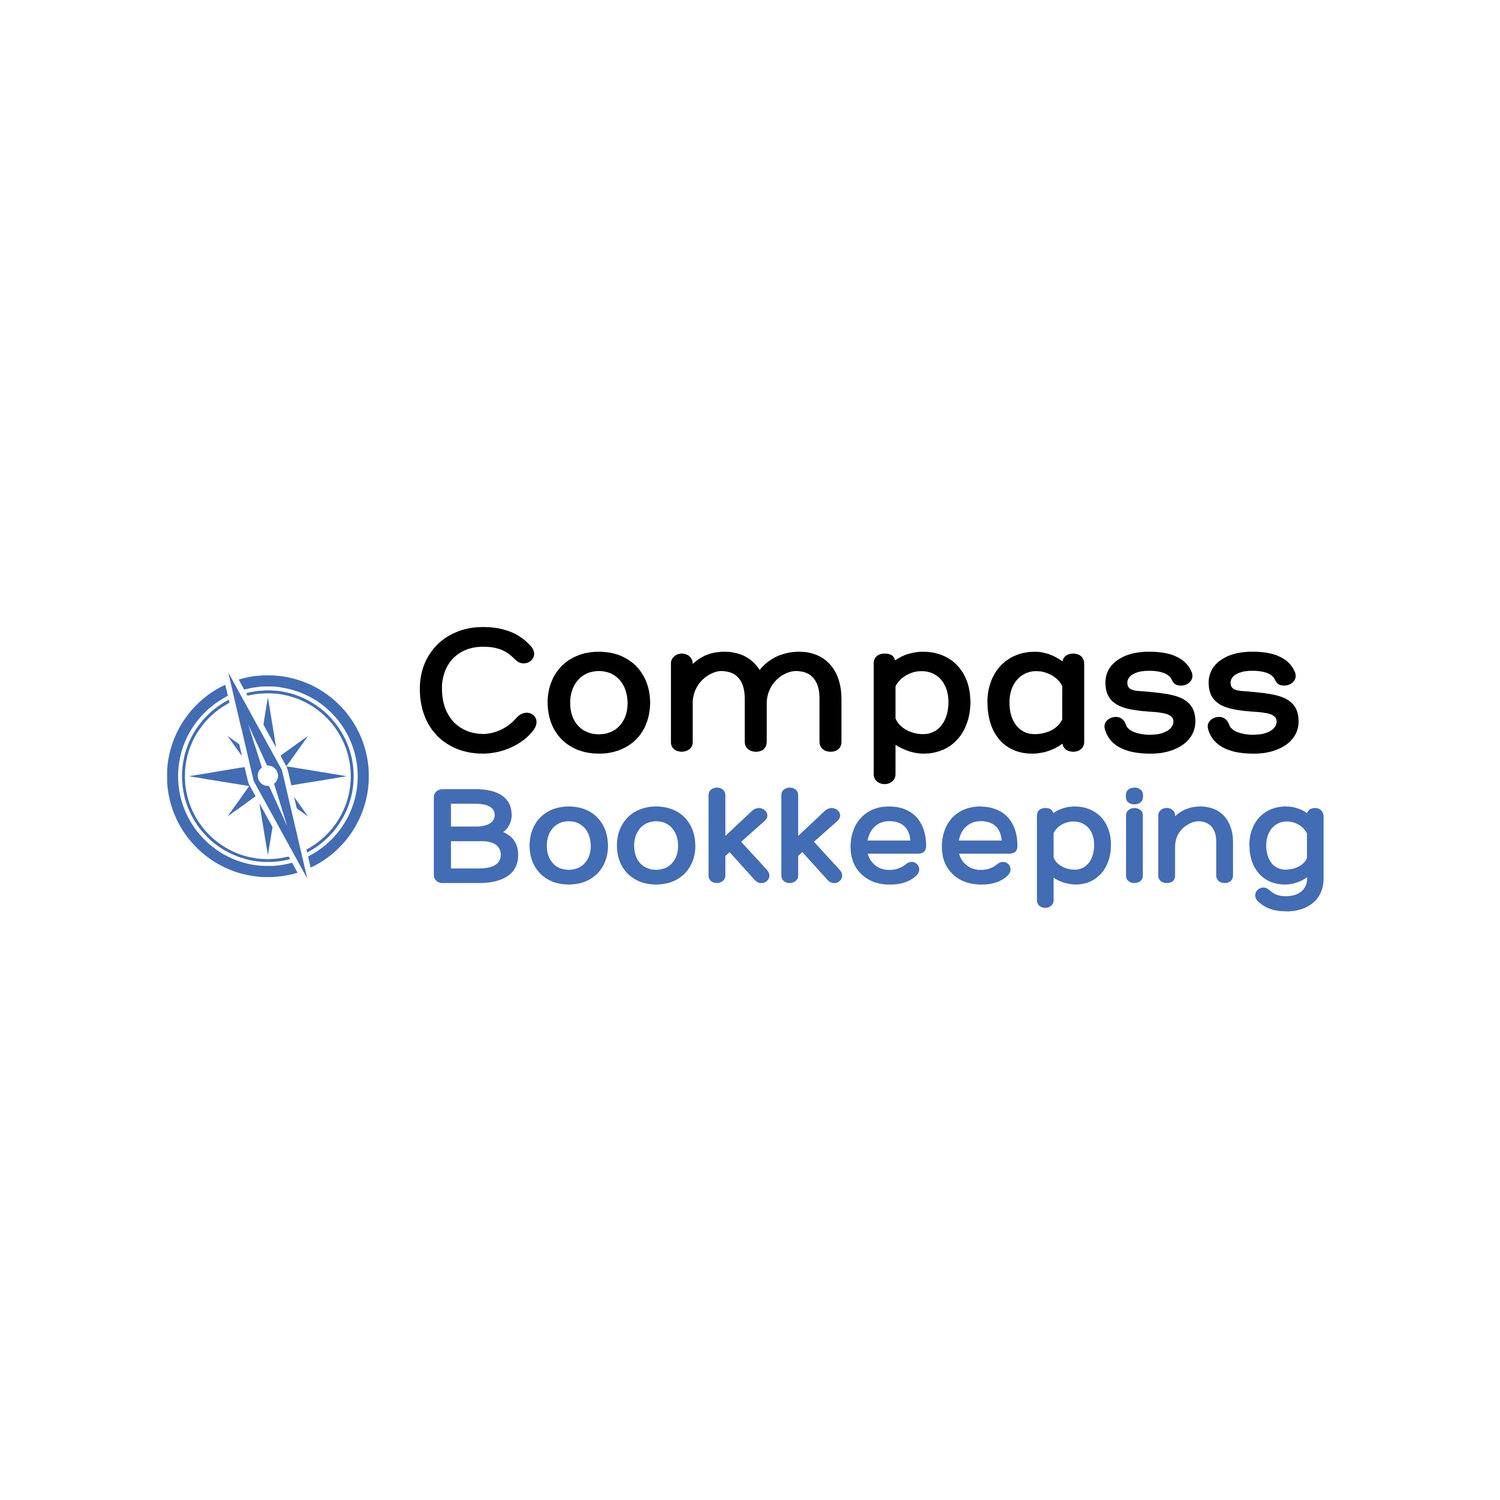 Compass Bookkeeping